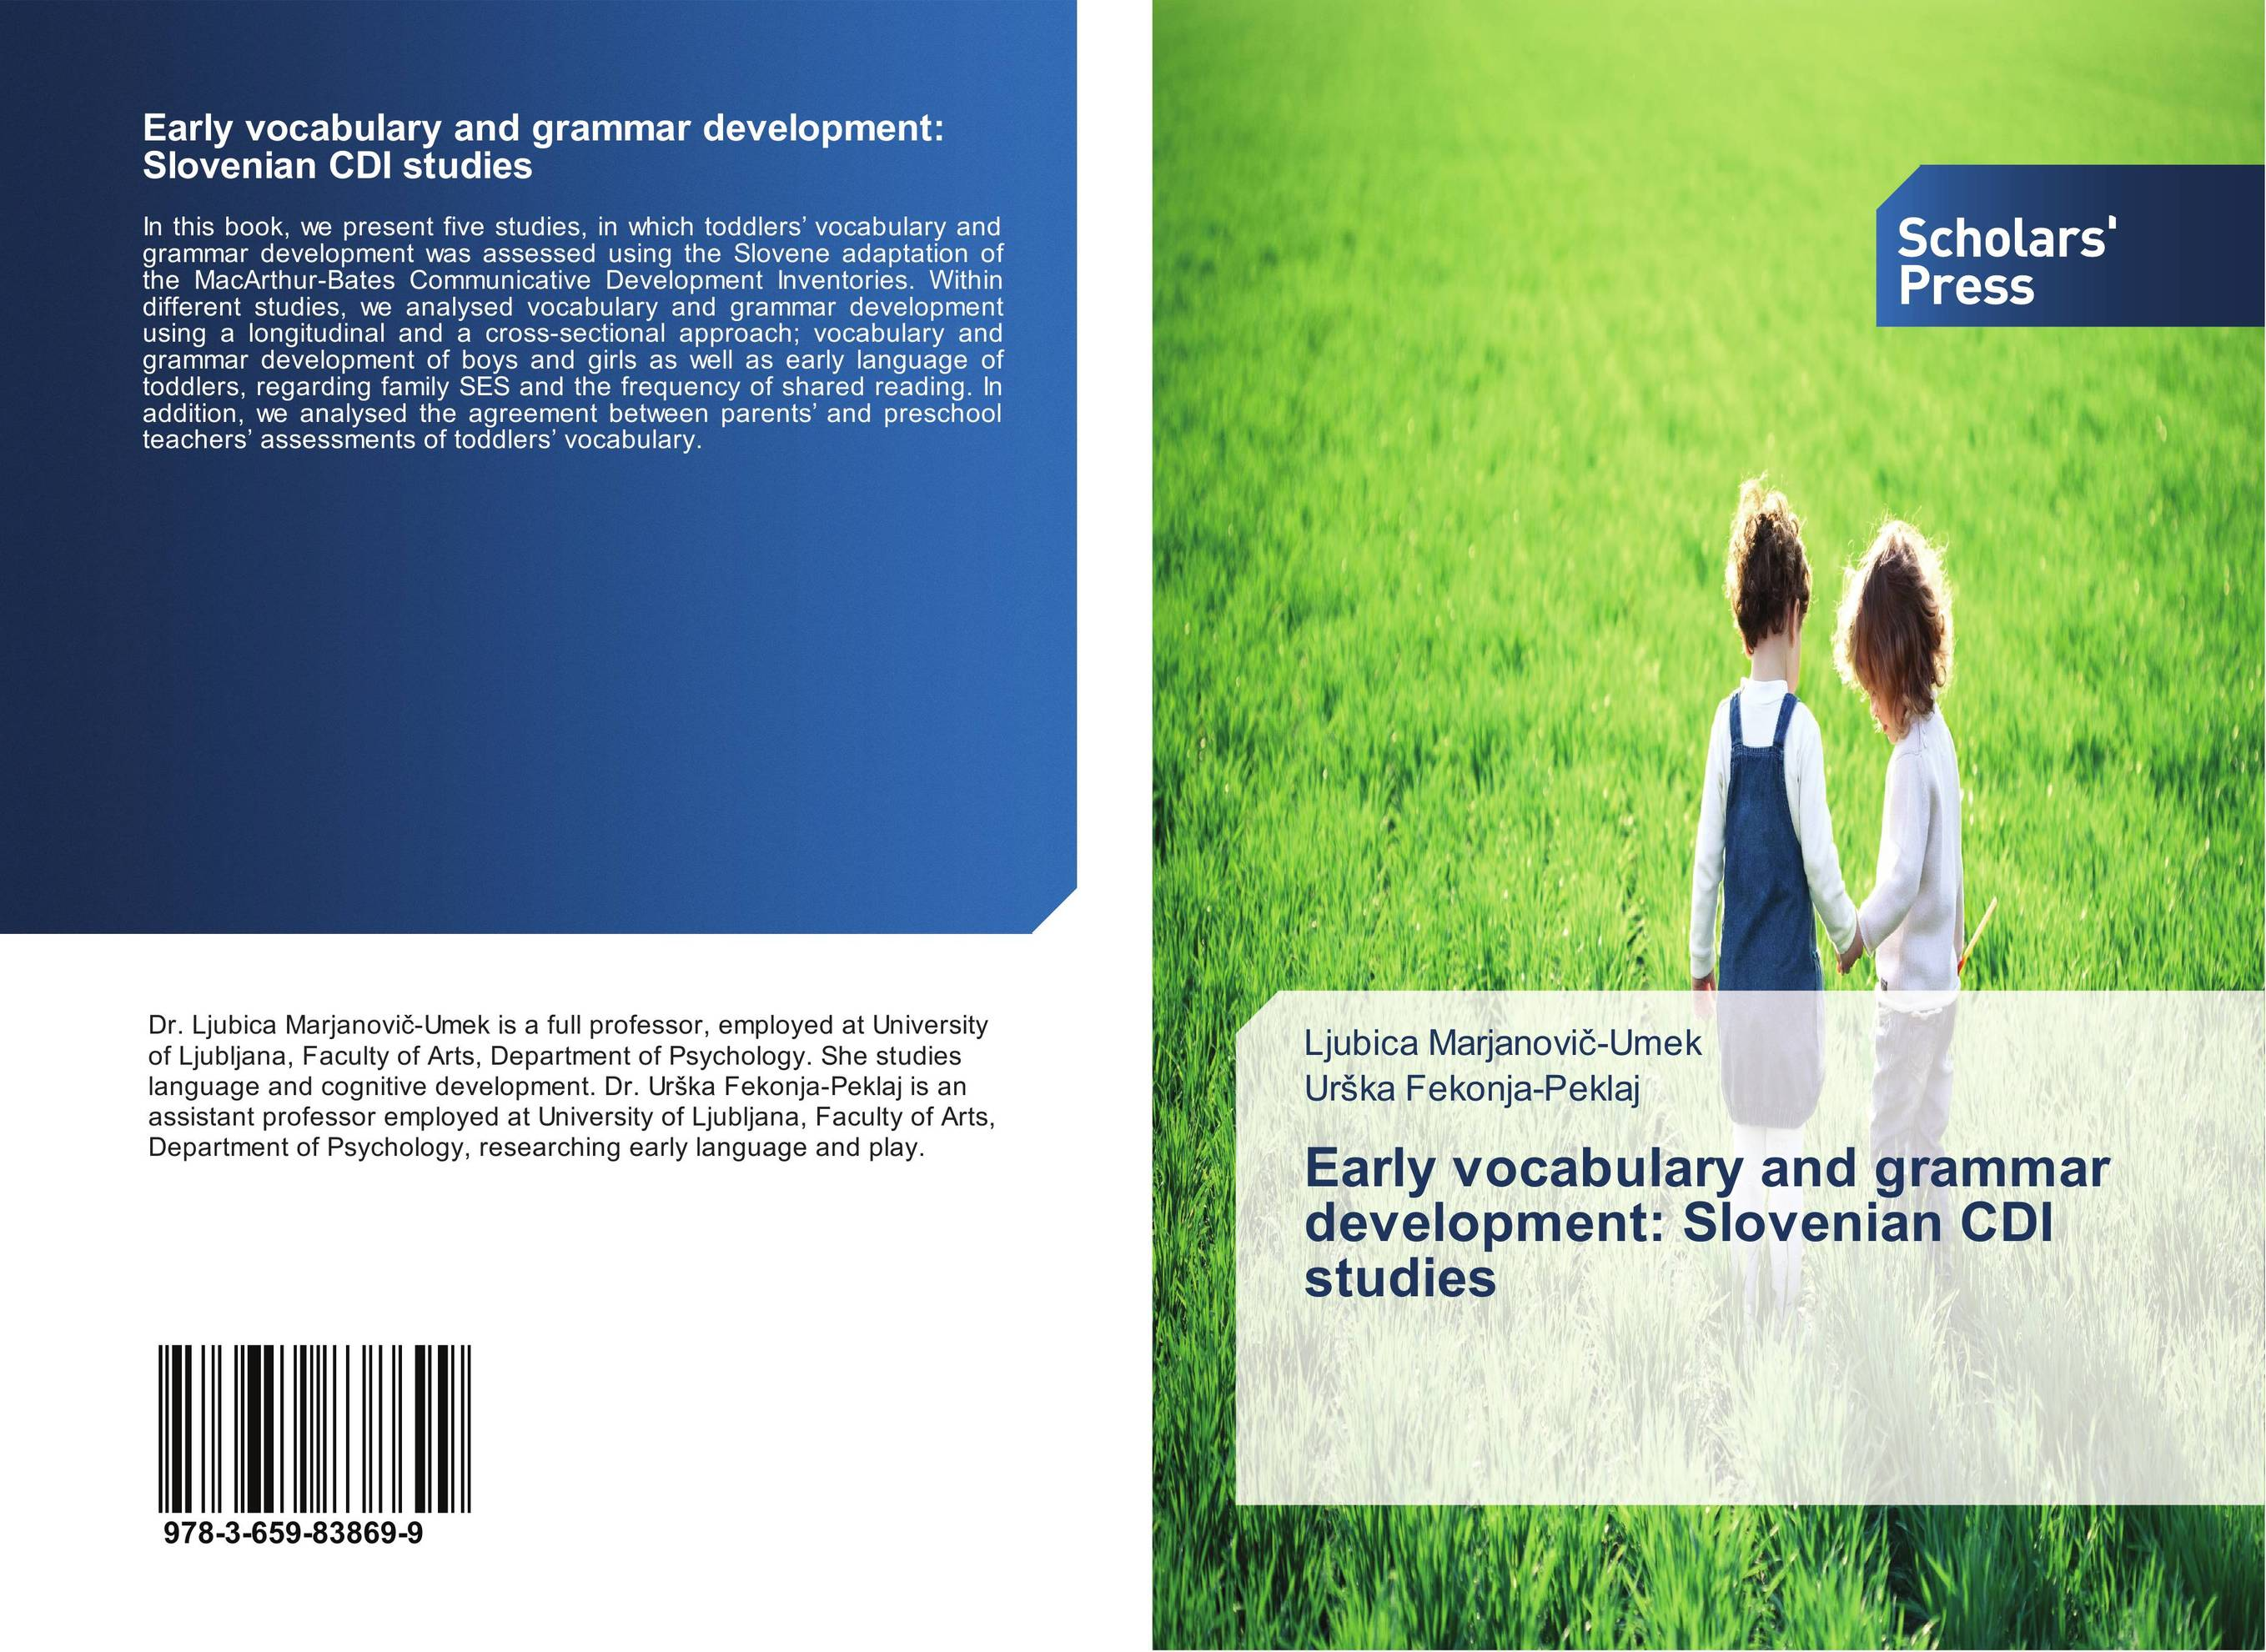 Early vocabulary and grammar development: Slovenian CDI studies coveney lee english download [b1 ] grammar and vocabulary